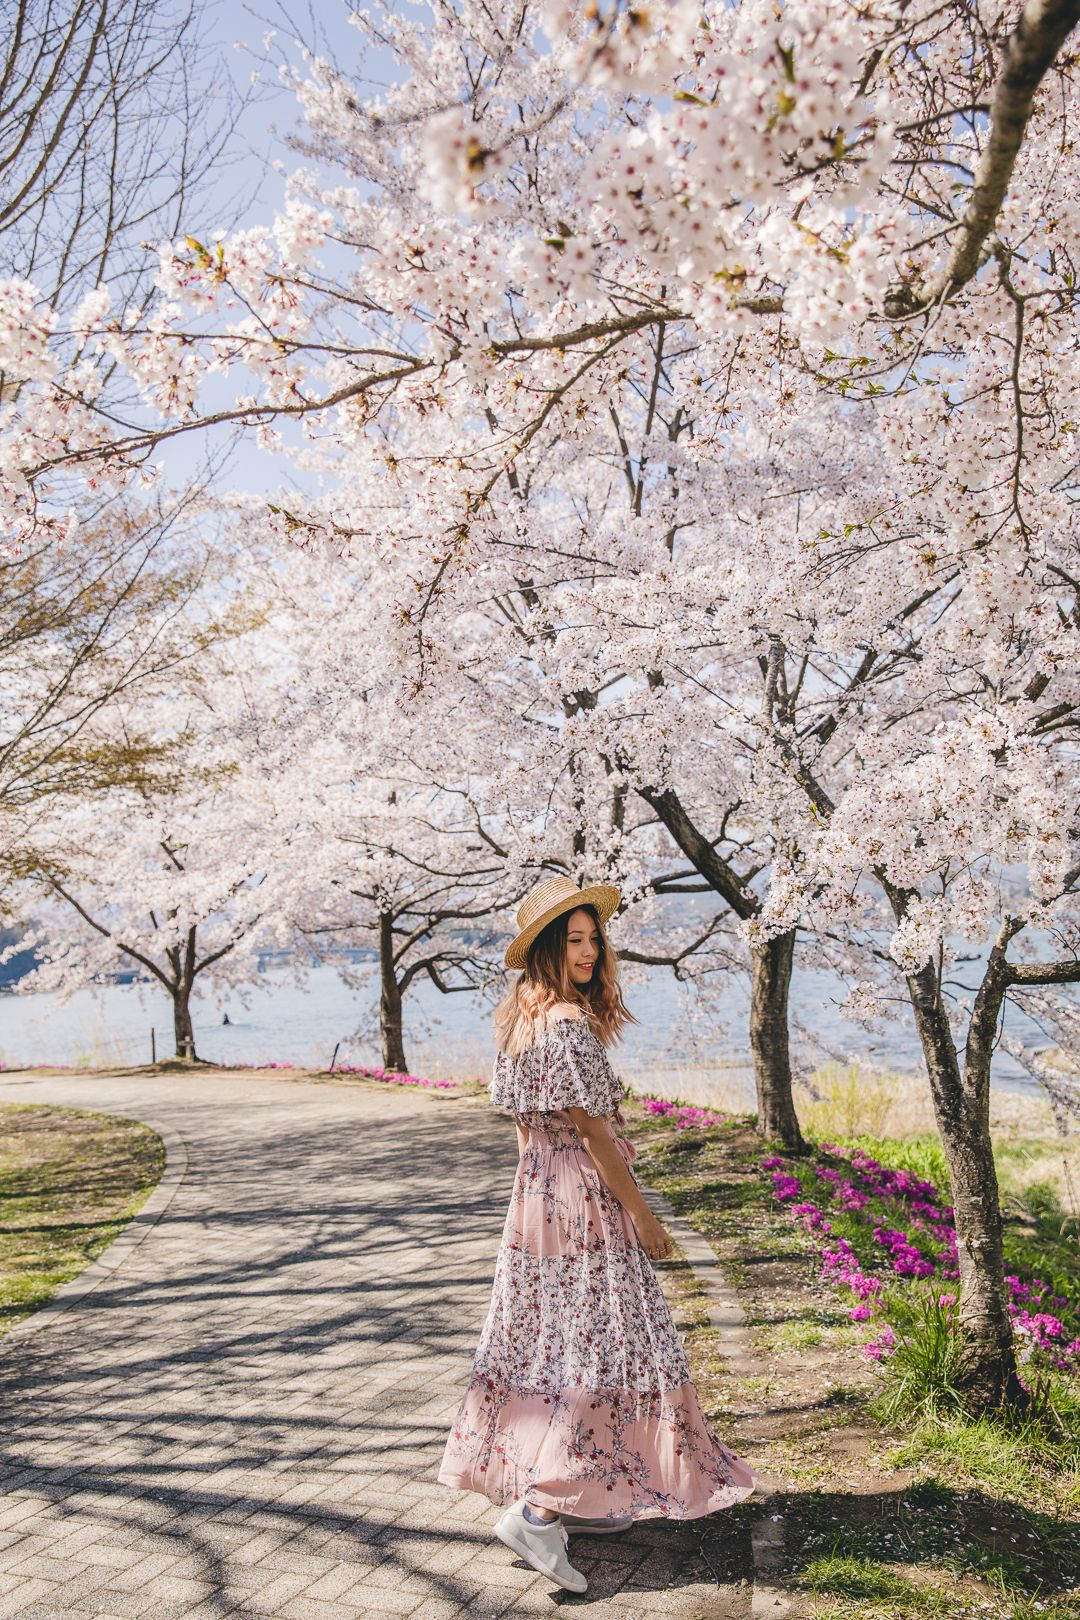 One Monster Lake Kawaguchiko Full Day Itinerary Connie And Luna Cherry Blossom Outfit Spring Outfits Japan Spring Photography